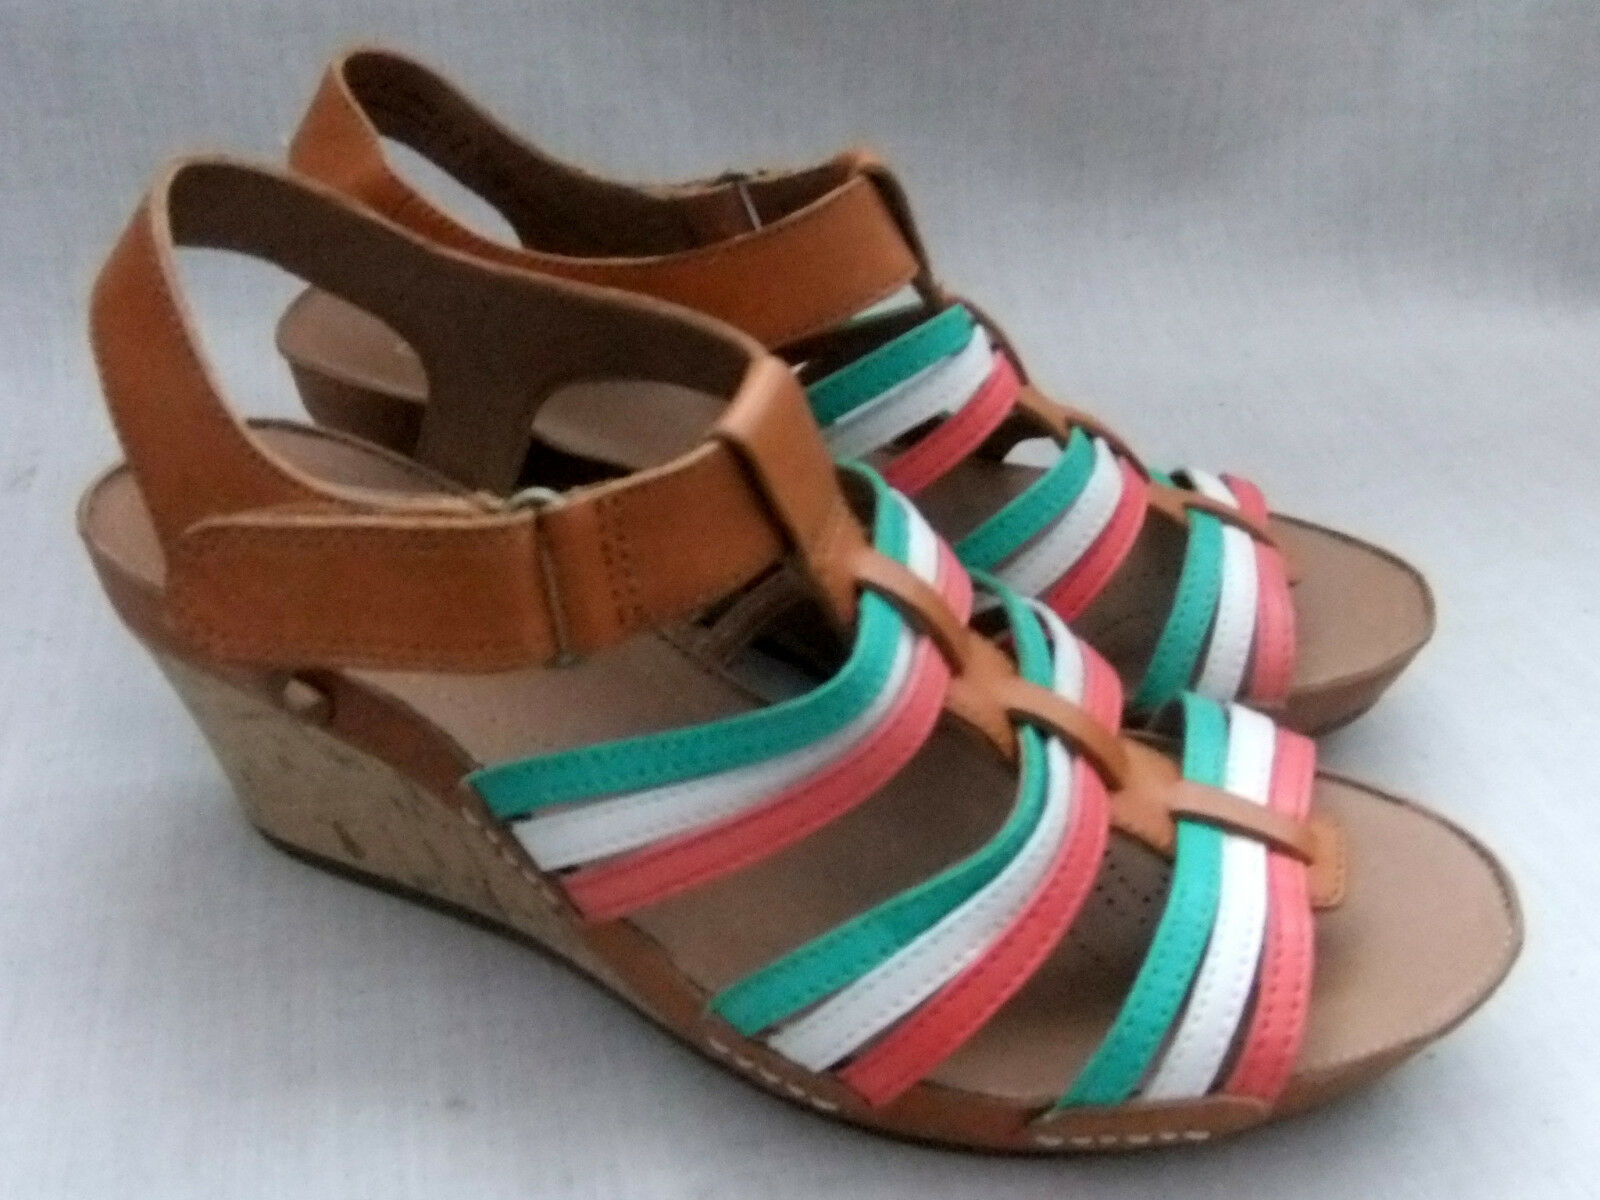 NEW CLARKS RUSTY LADY femmes TAN MULTI LEATHER WEDGE SANDALS Taille 6.5   40